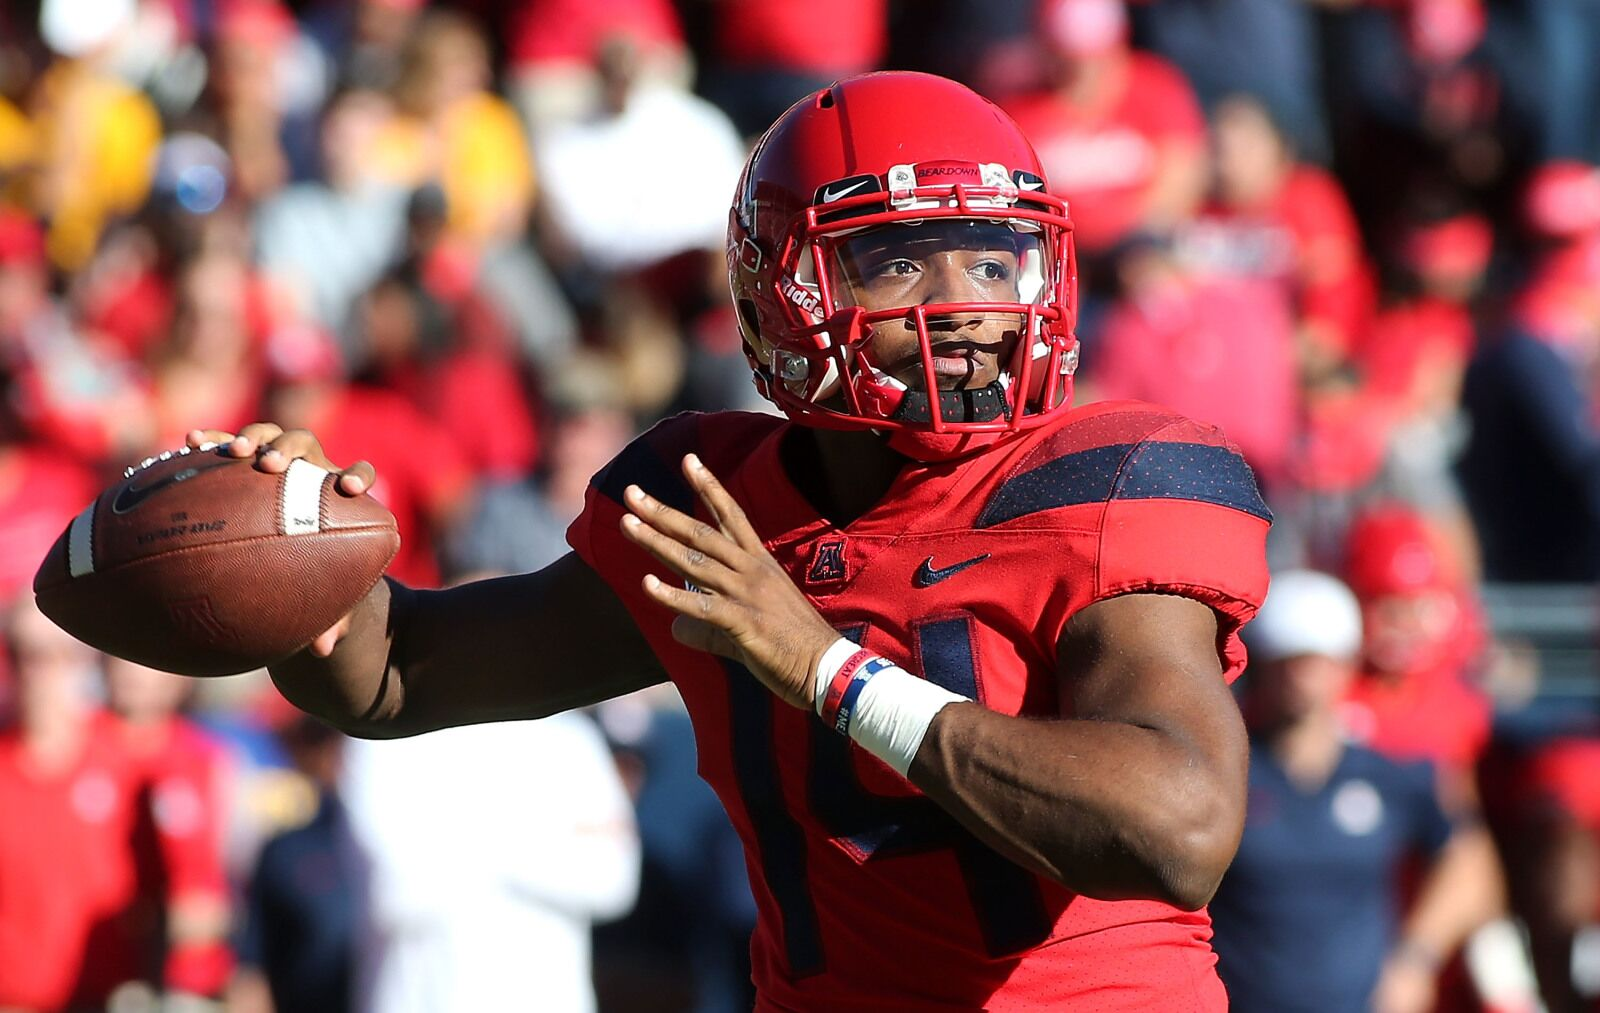 Arizona Football: Quarterback Khalil Tate is poised dominate the Pac-12